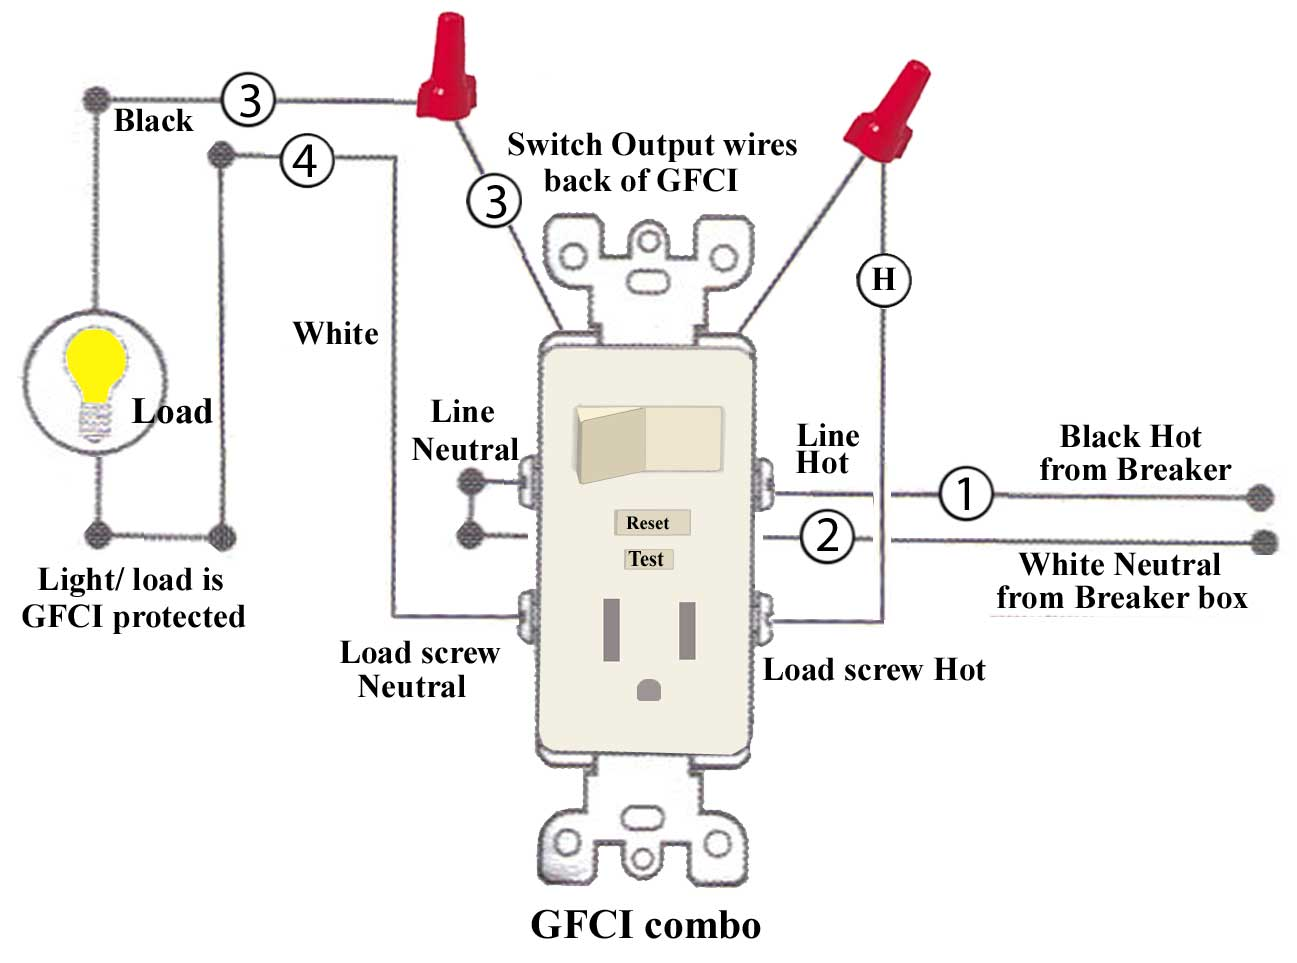 GFCI combo wiring update how to install and troubleshoot gfci switch and outlet combo wiring diagram at bakdesigns.co